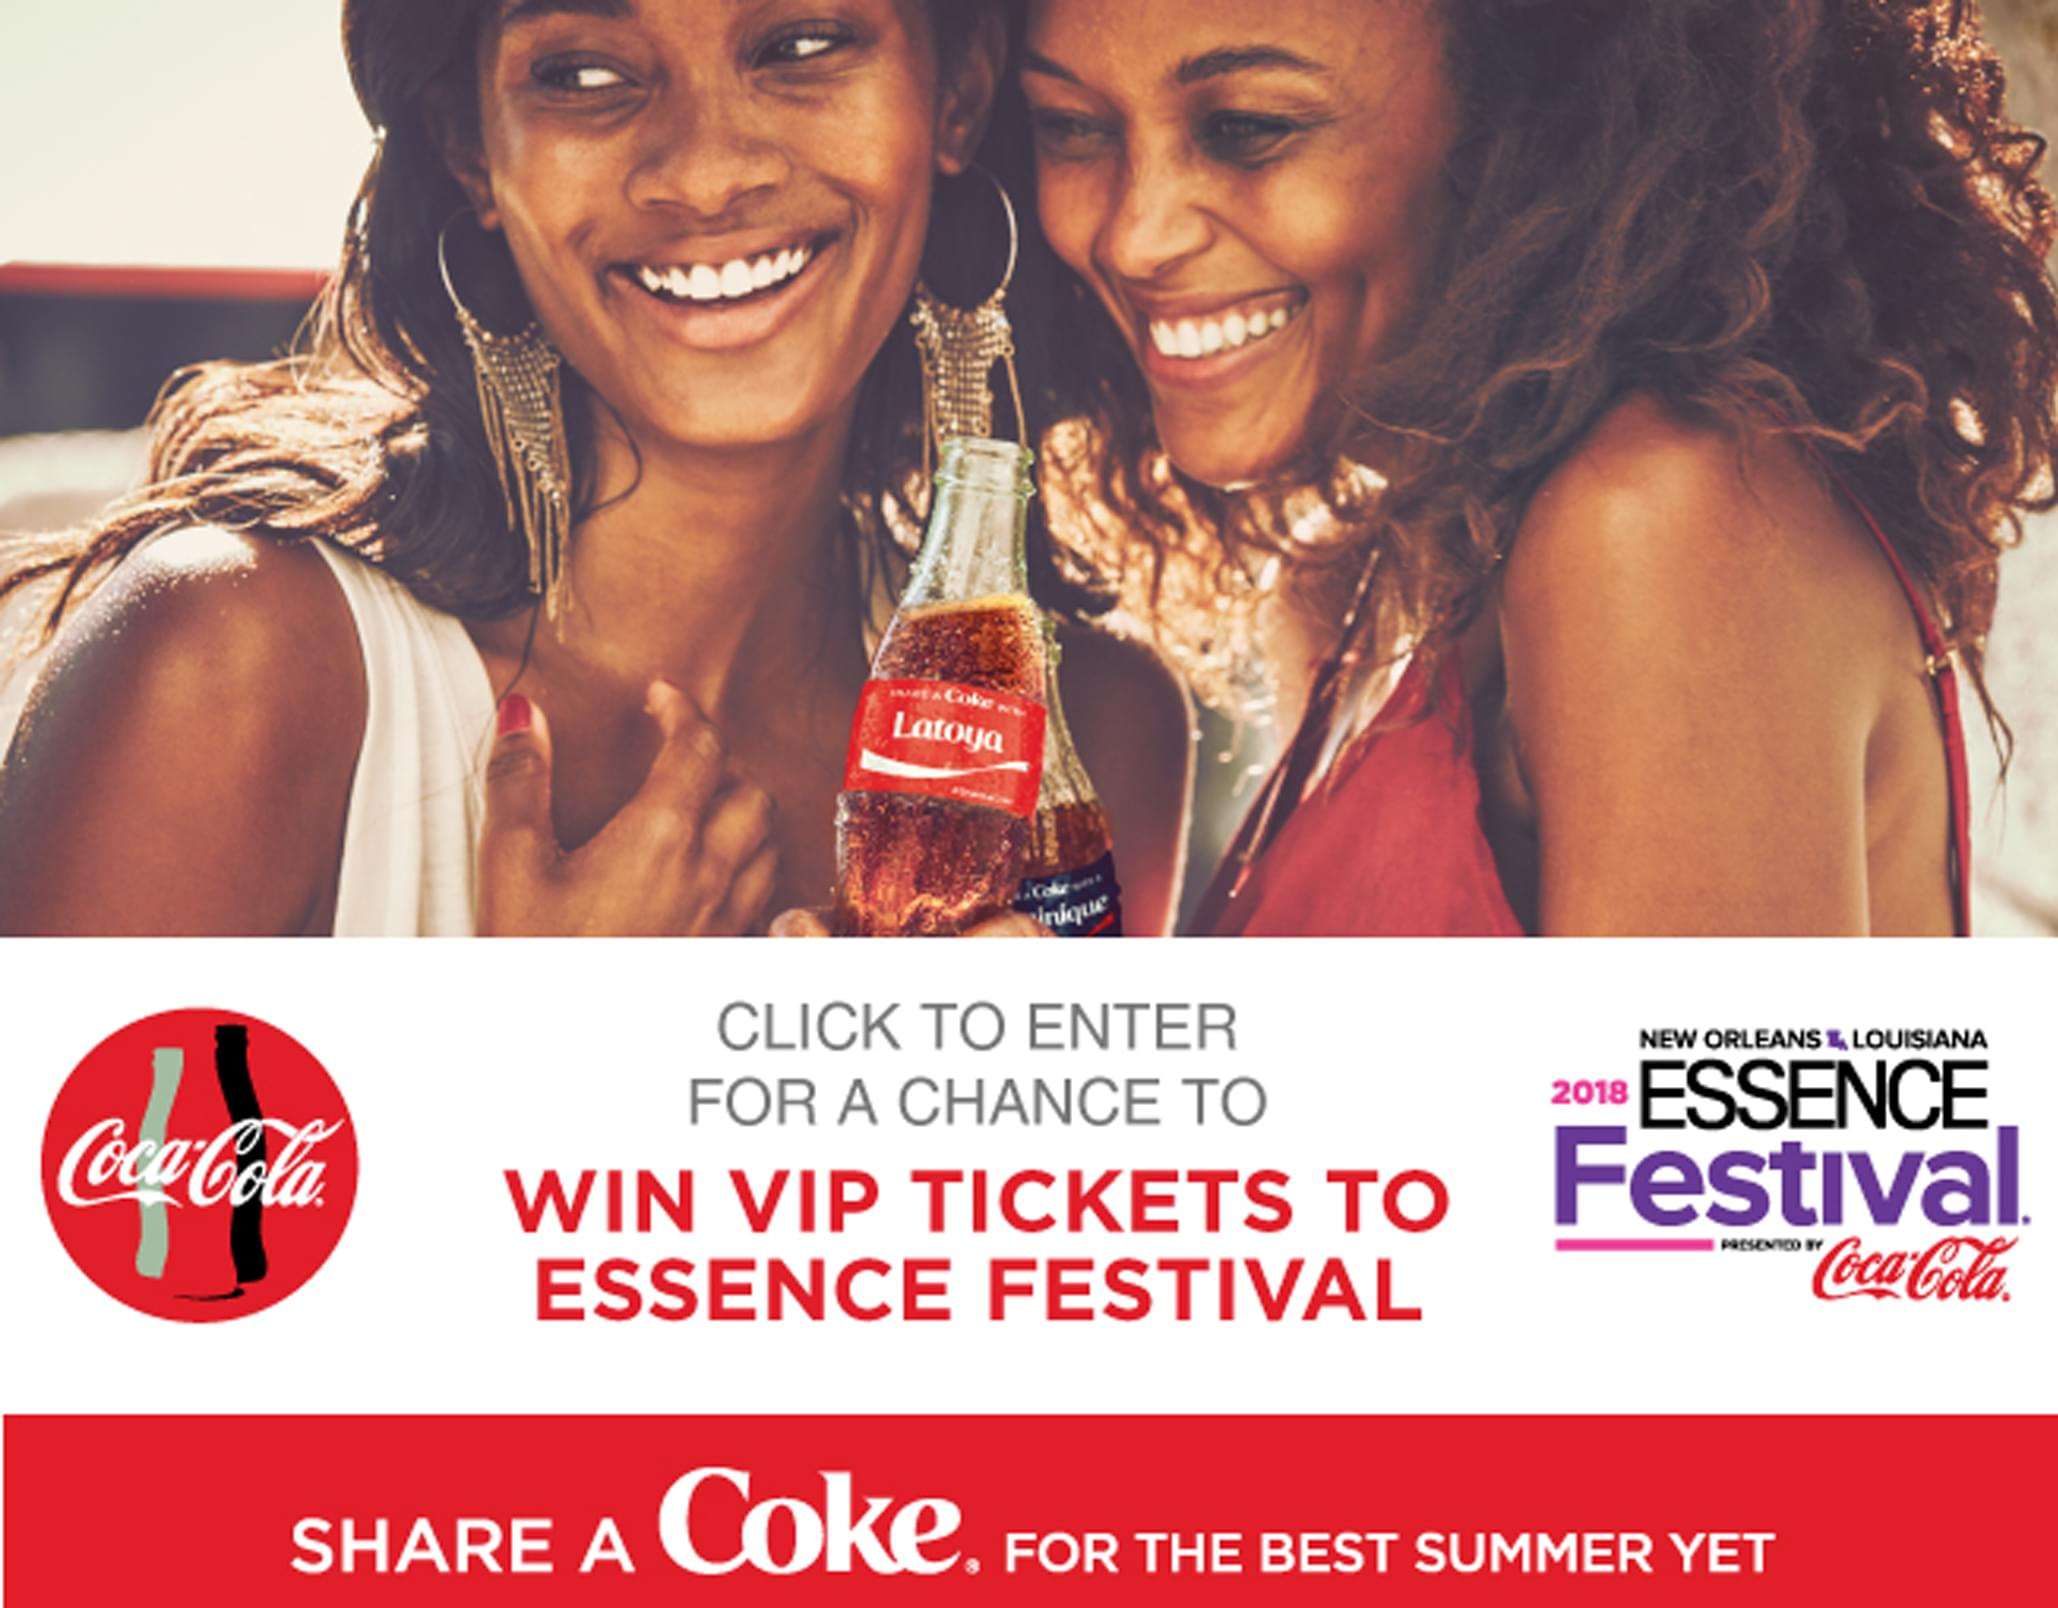 Picture Me Sharing A Coke-Essence Festival 2018